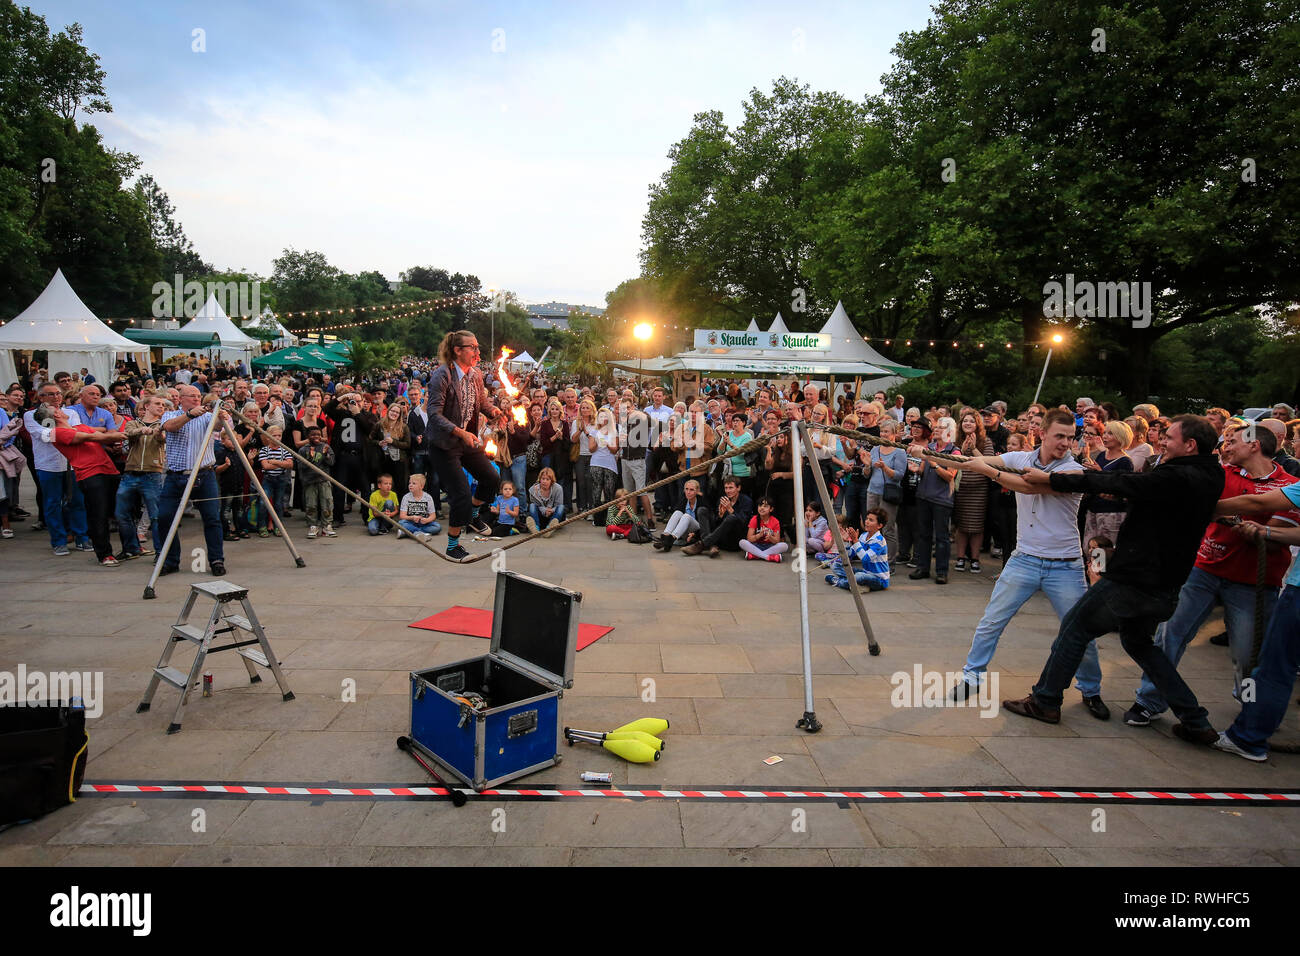 Essen, North Rhine-Westphalia, Ruhr area, Germany - Park festival in the Grugapark, here on the occasion of the Essen 2017 Green Capital of Europe. Es - Stock Image